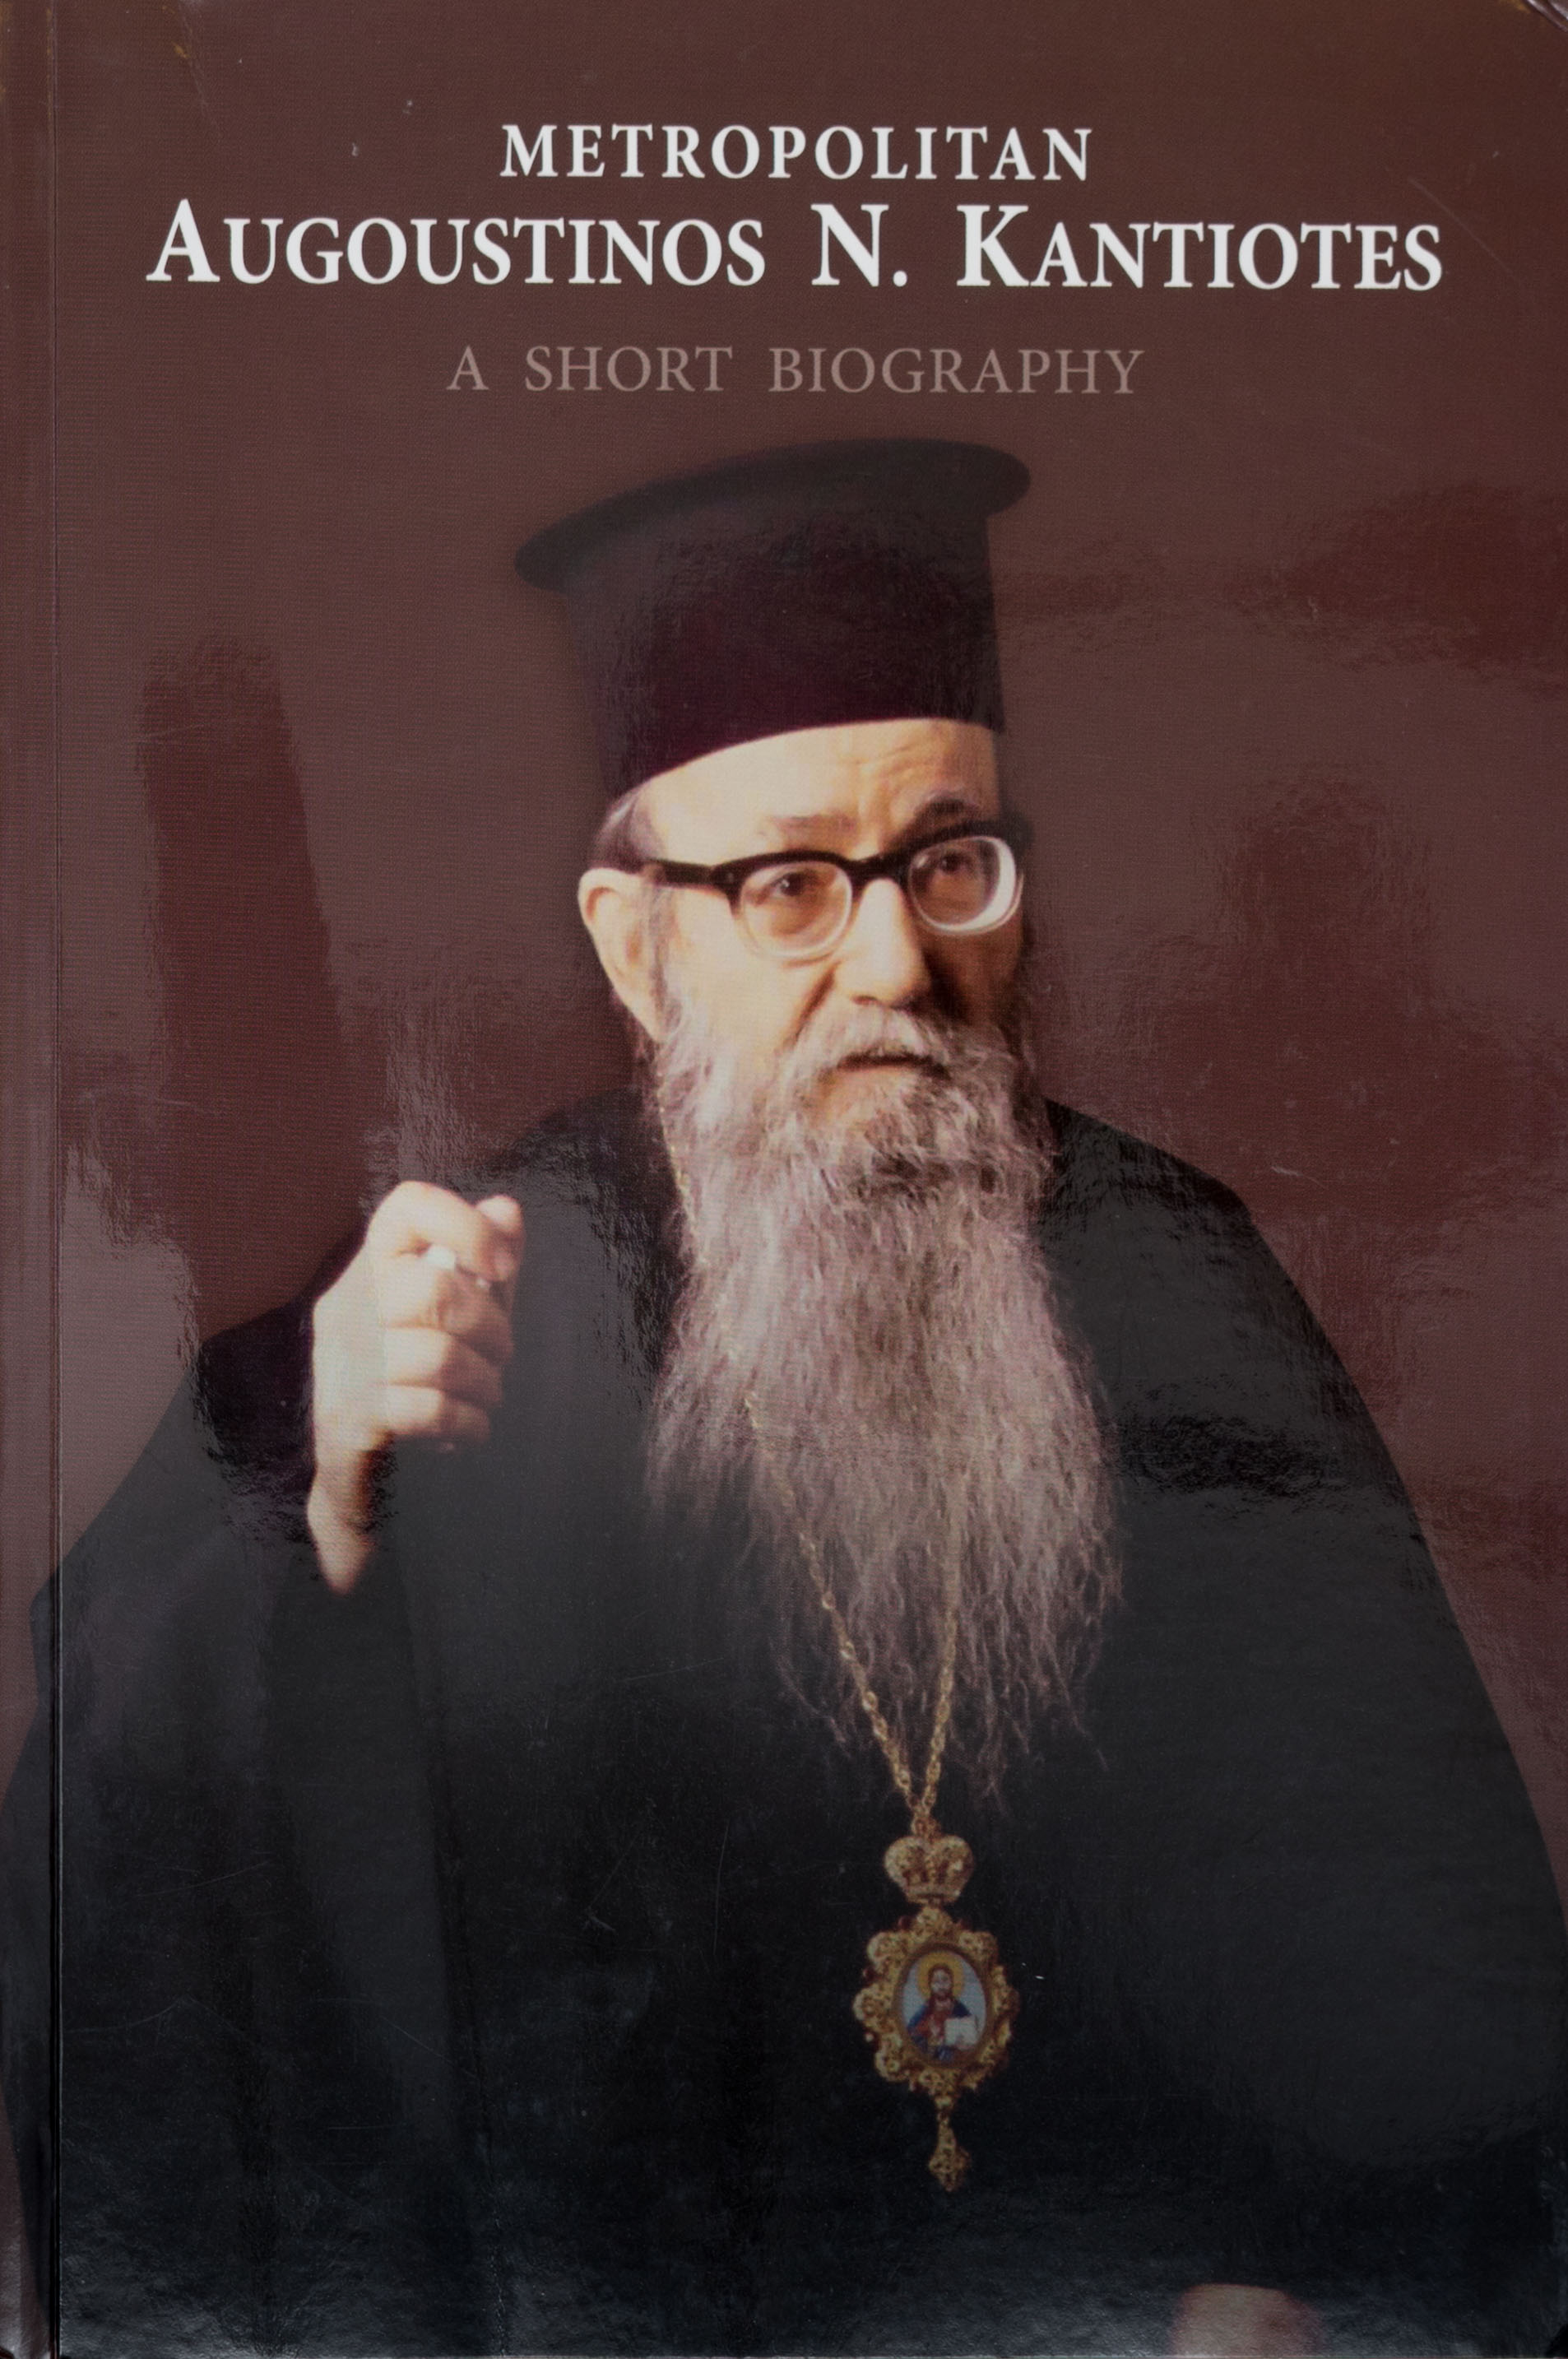 Metropolitan Augoustinos N. Kantiotes: A Short Biography